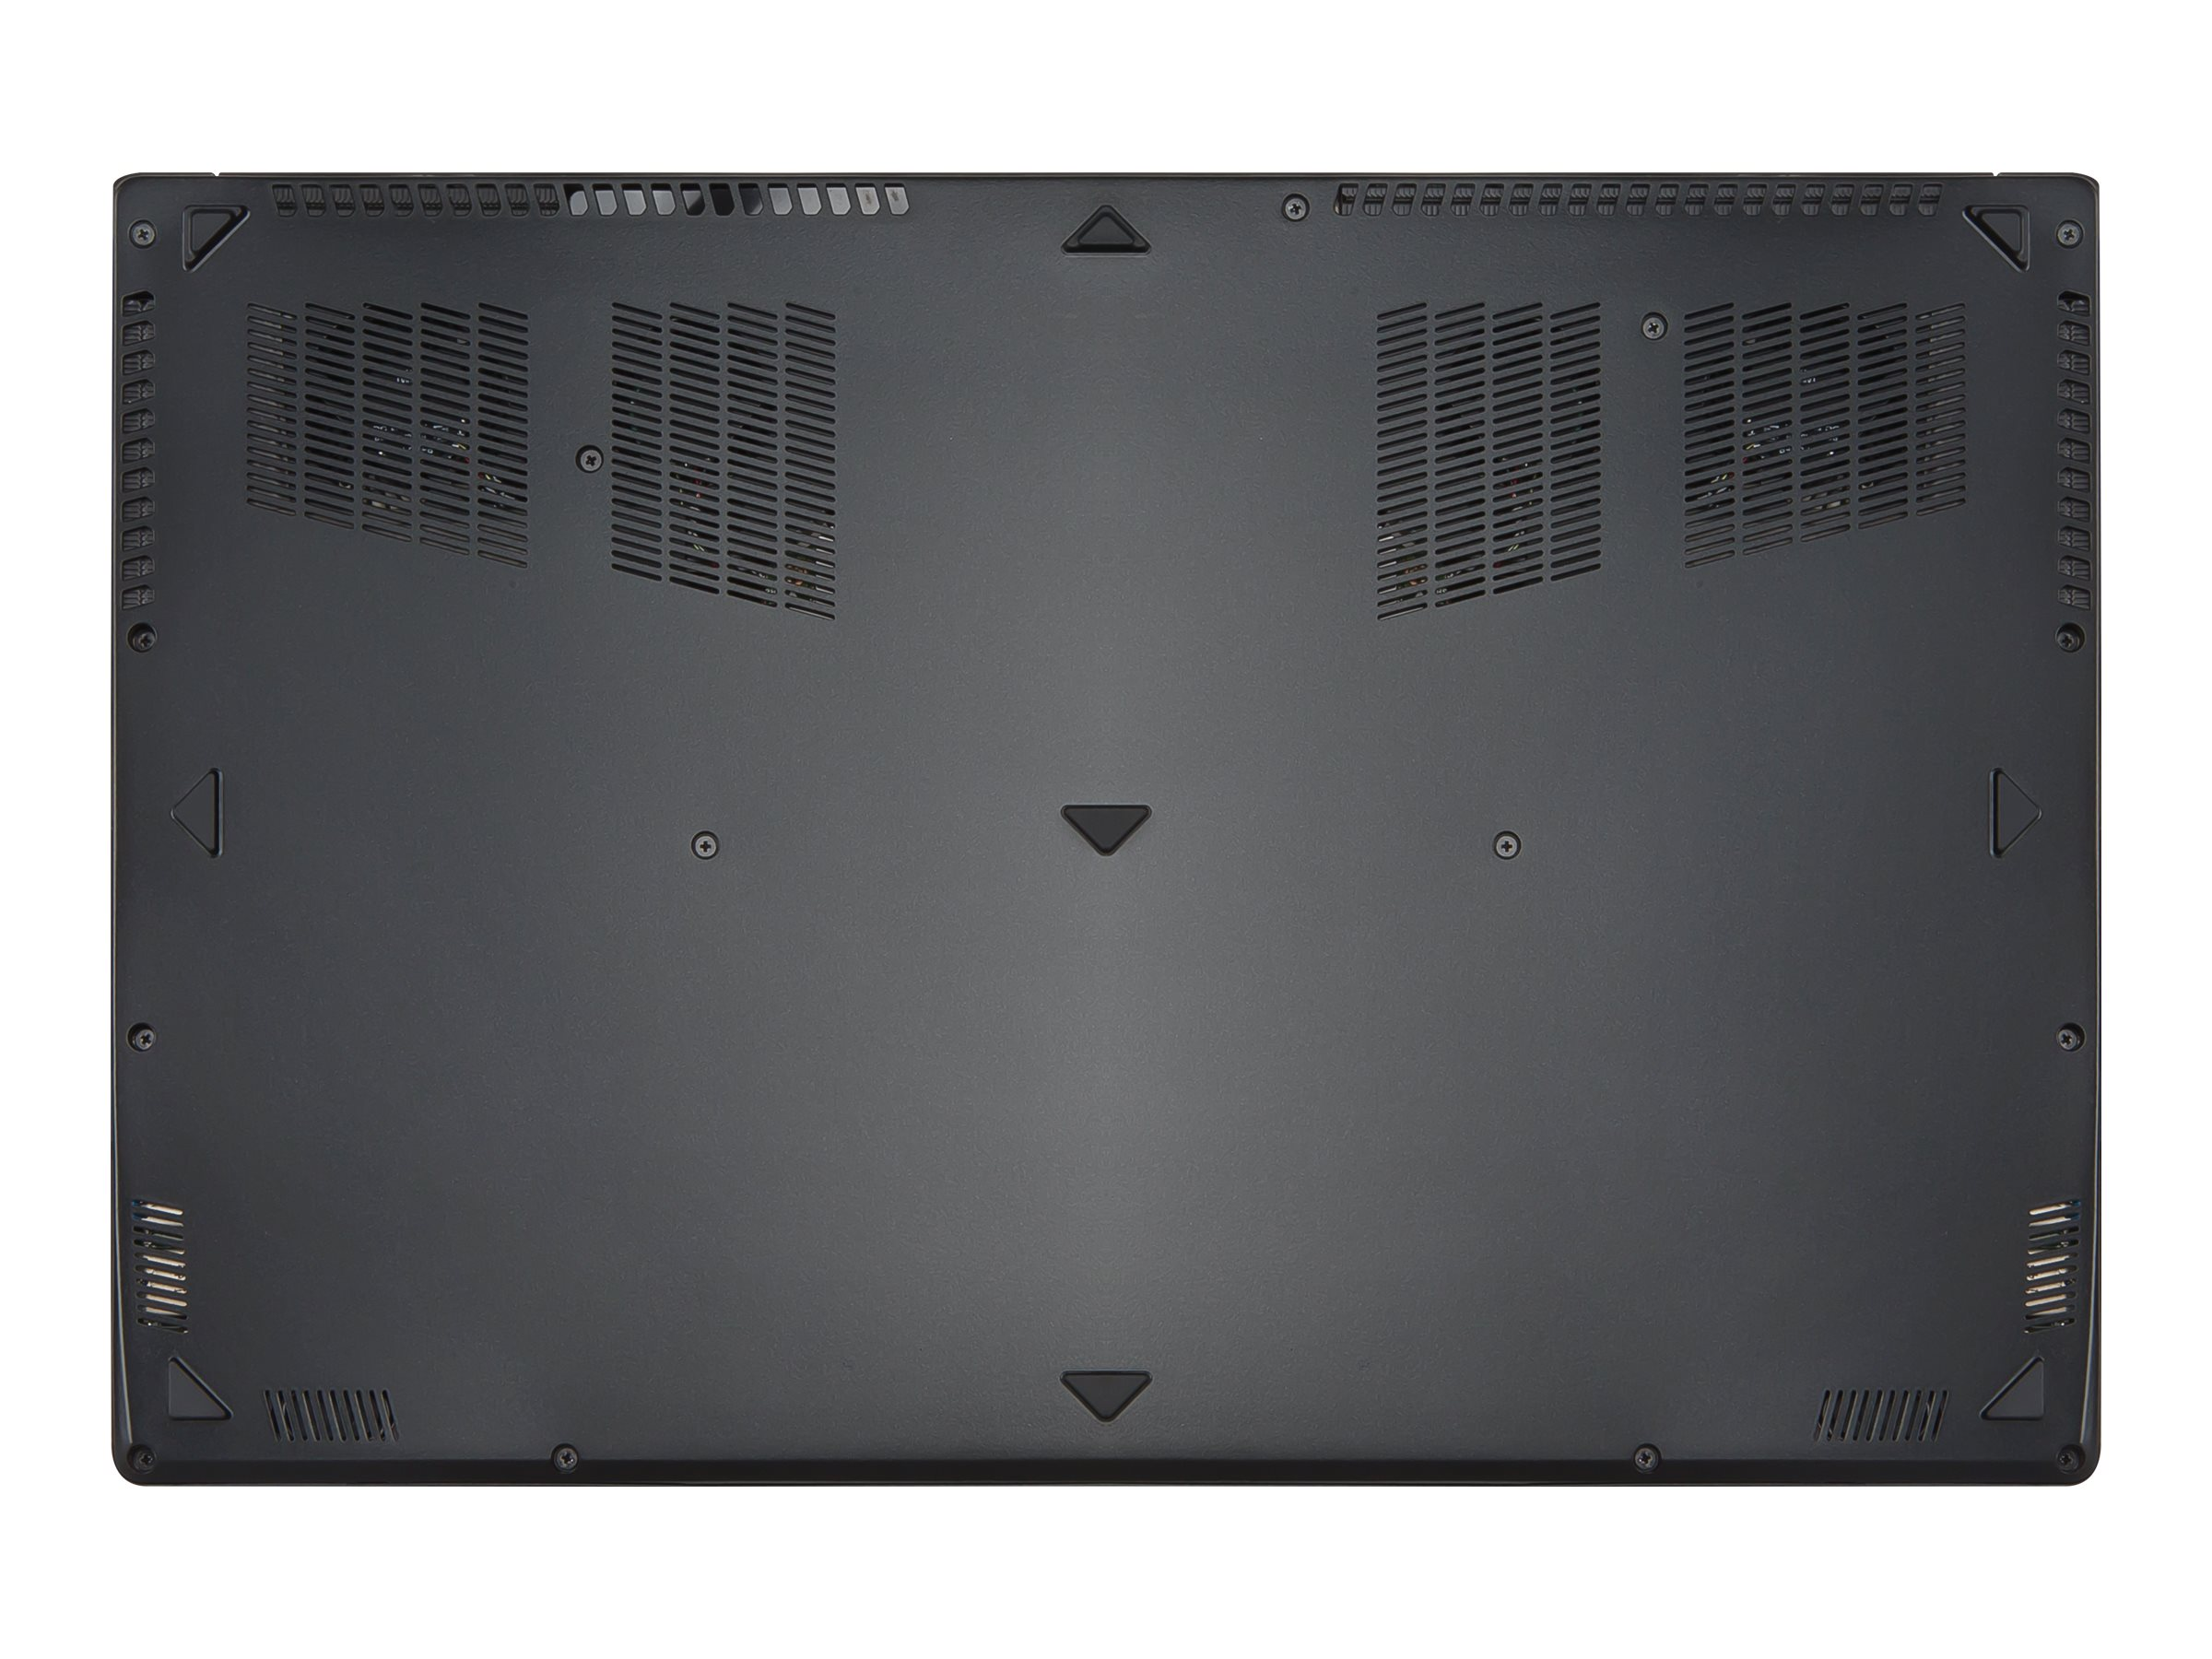 MSI Computer GS63VR STEALTH PRO 4K-021 Image 9